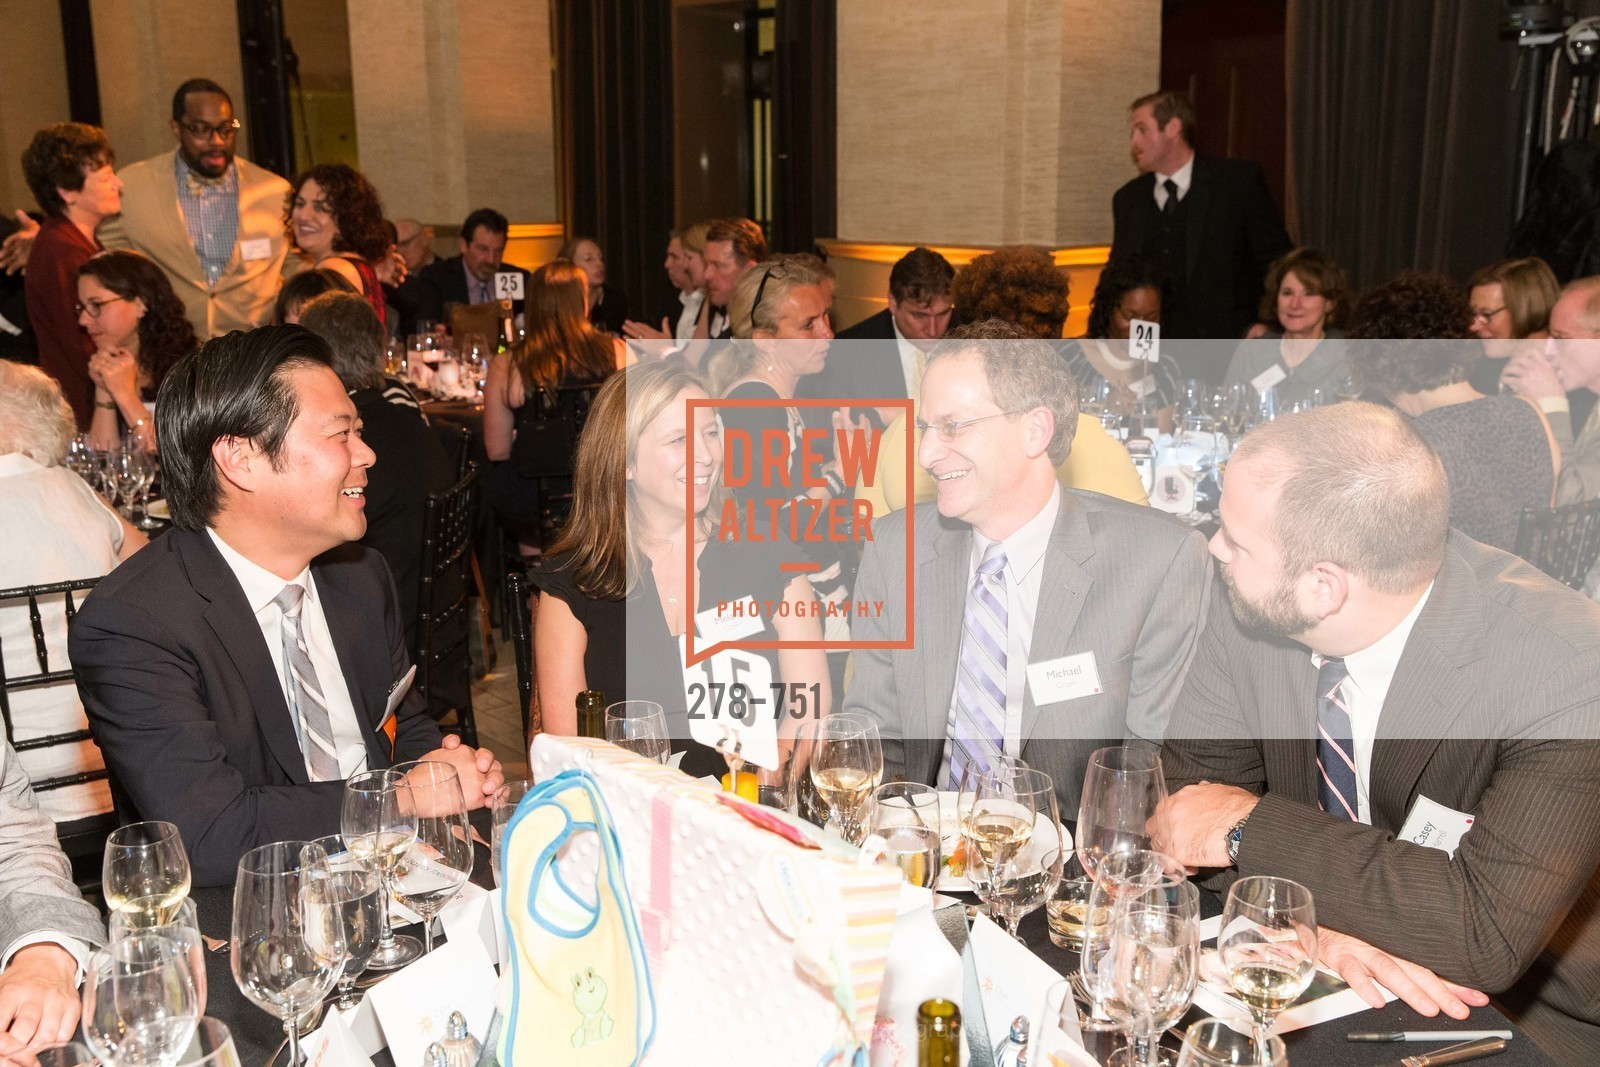 Roger Kim, Melanie Green, Michael Green, Casey Harrell, CENTER FOR ENVIRONMENTAL HEALTH (CEH) 2015 Gala, Bently Reserve, May 28th, 2015,Drew Altizer, Drew Altizer Photography, full-service agency, private events, San Francisco photographer, photographer california